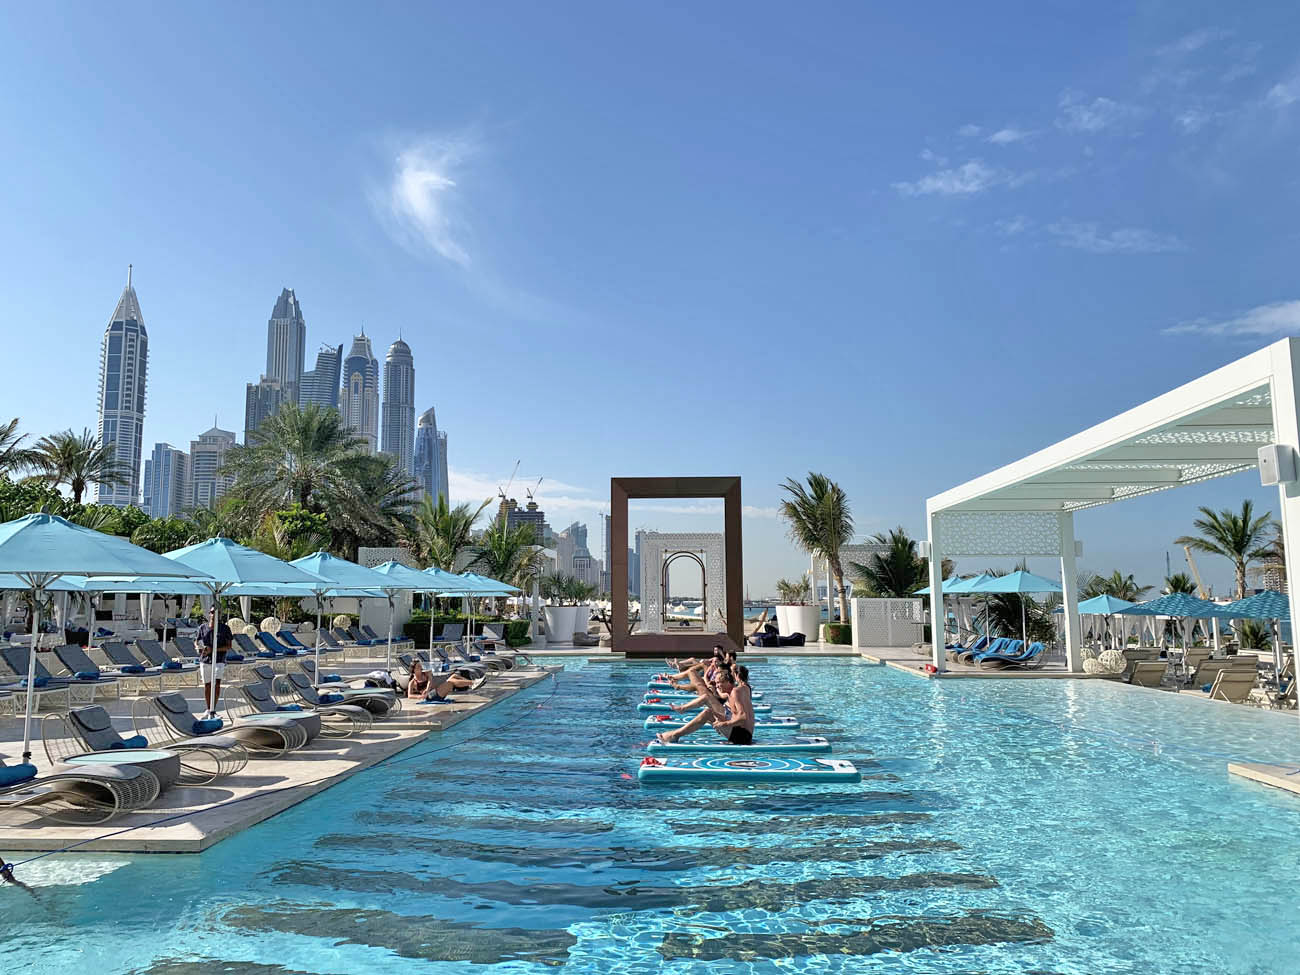 DRIT Beach Dubai - beach club One and Only Royal Mirage